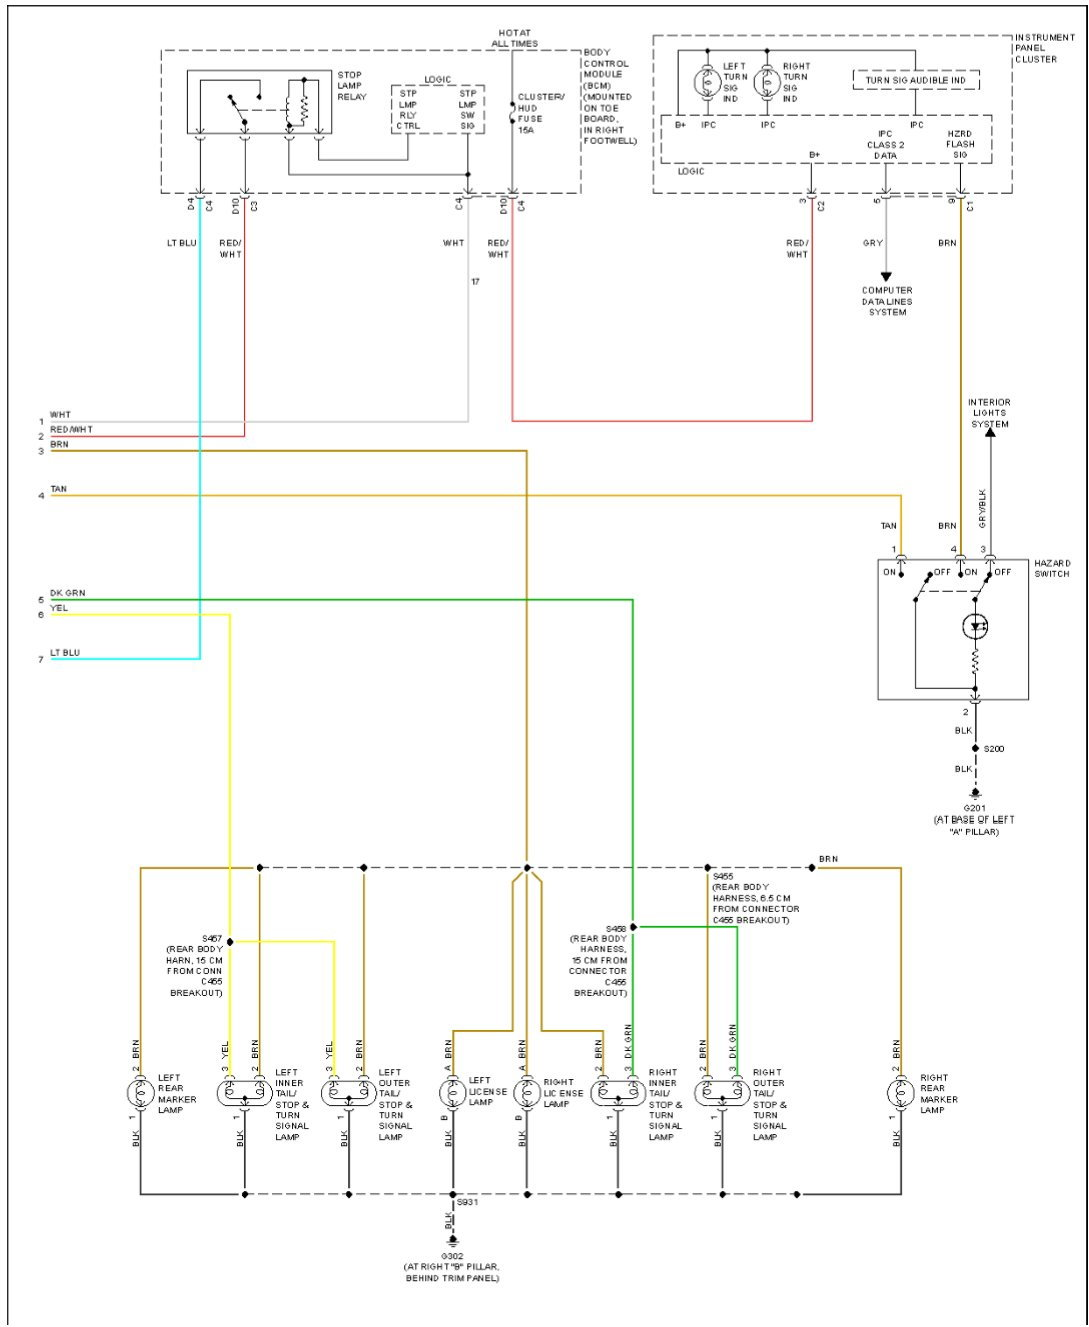 2006 tail light wiring diagram needed - CorvetteForum ...